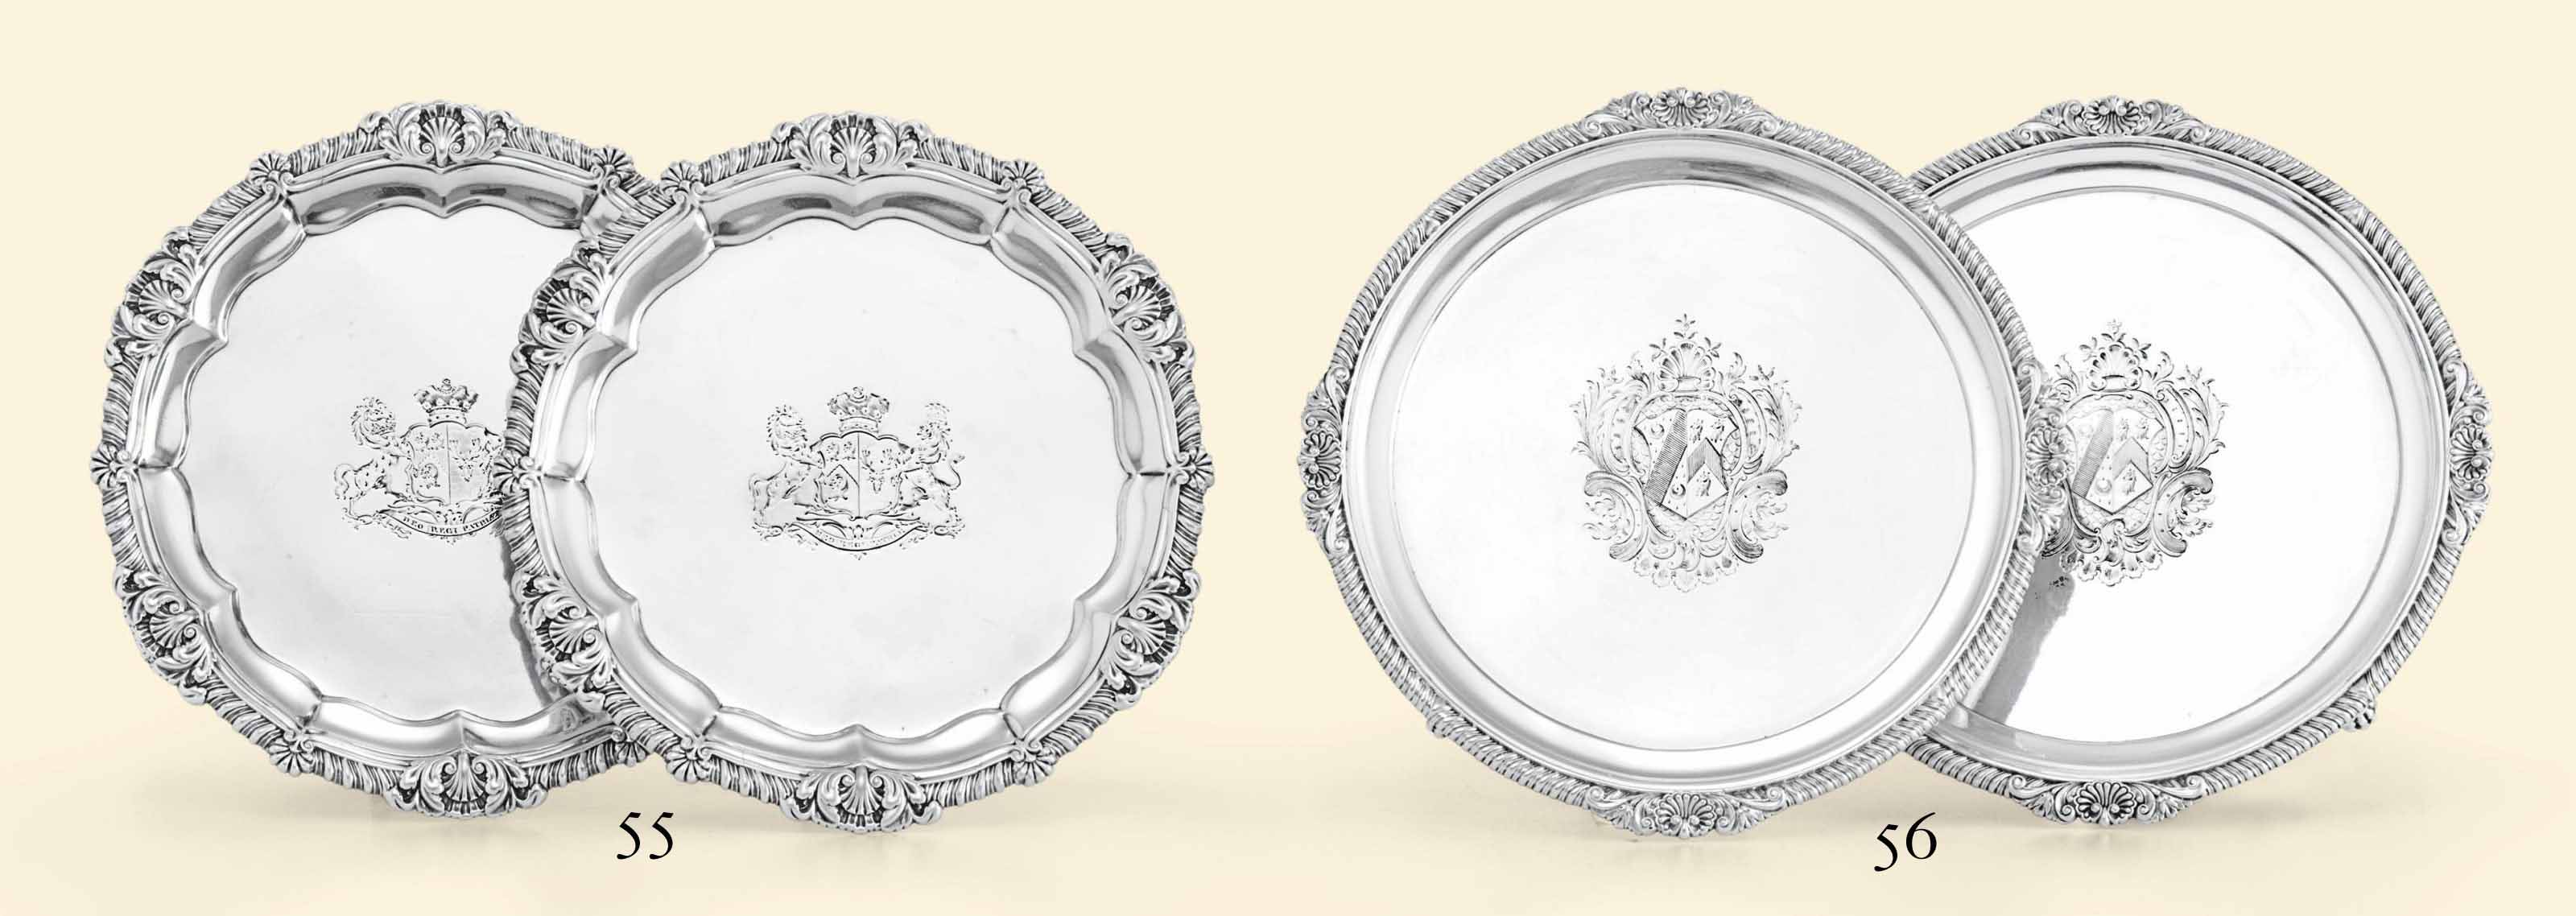 A PAIR OF GEORGE IV SILVER SALVERS